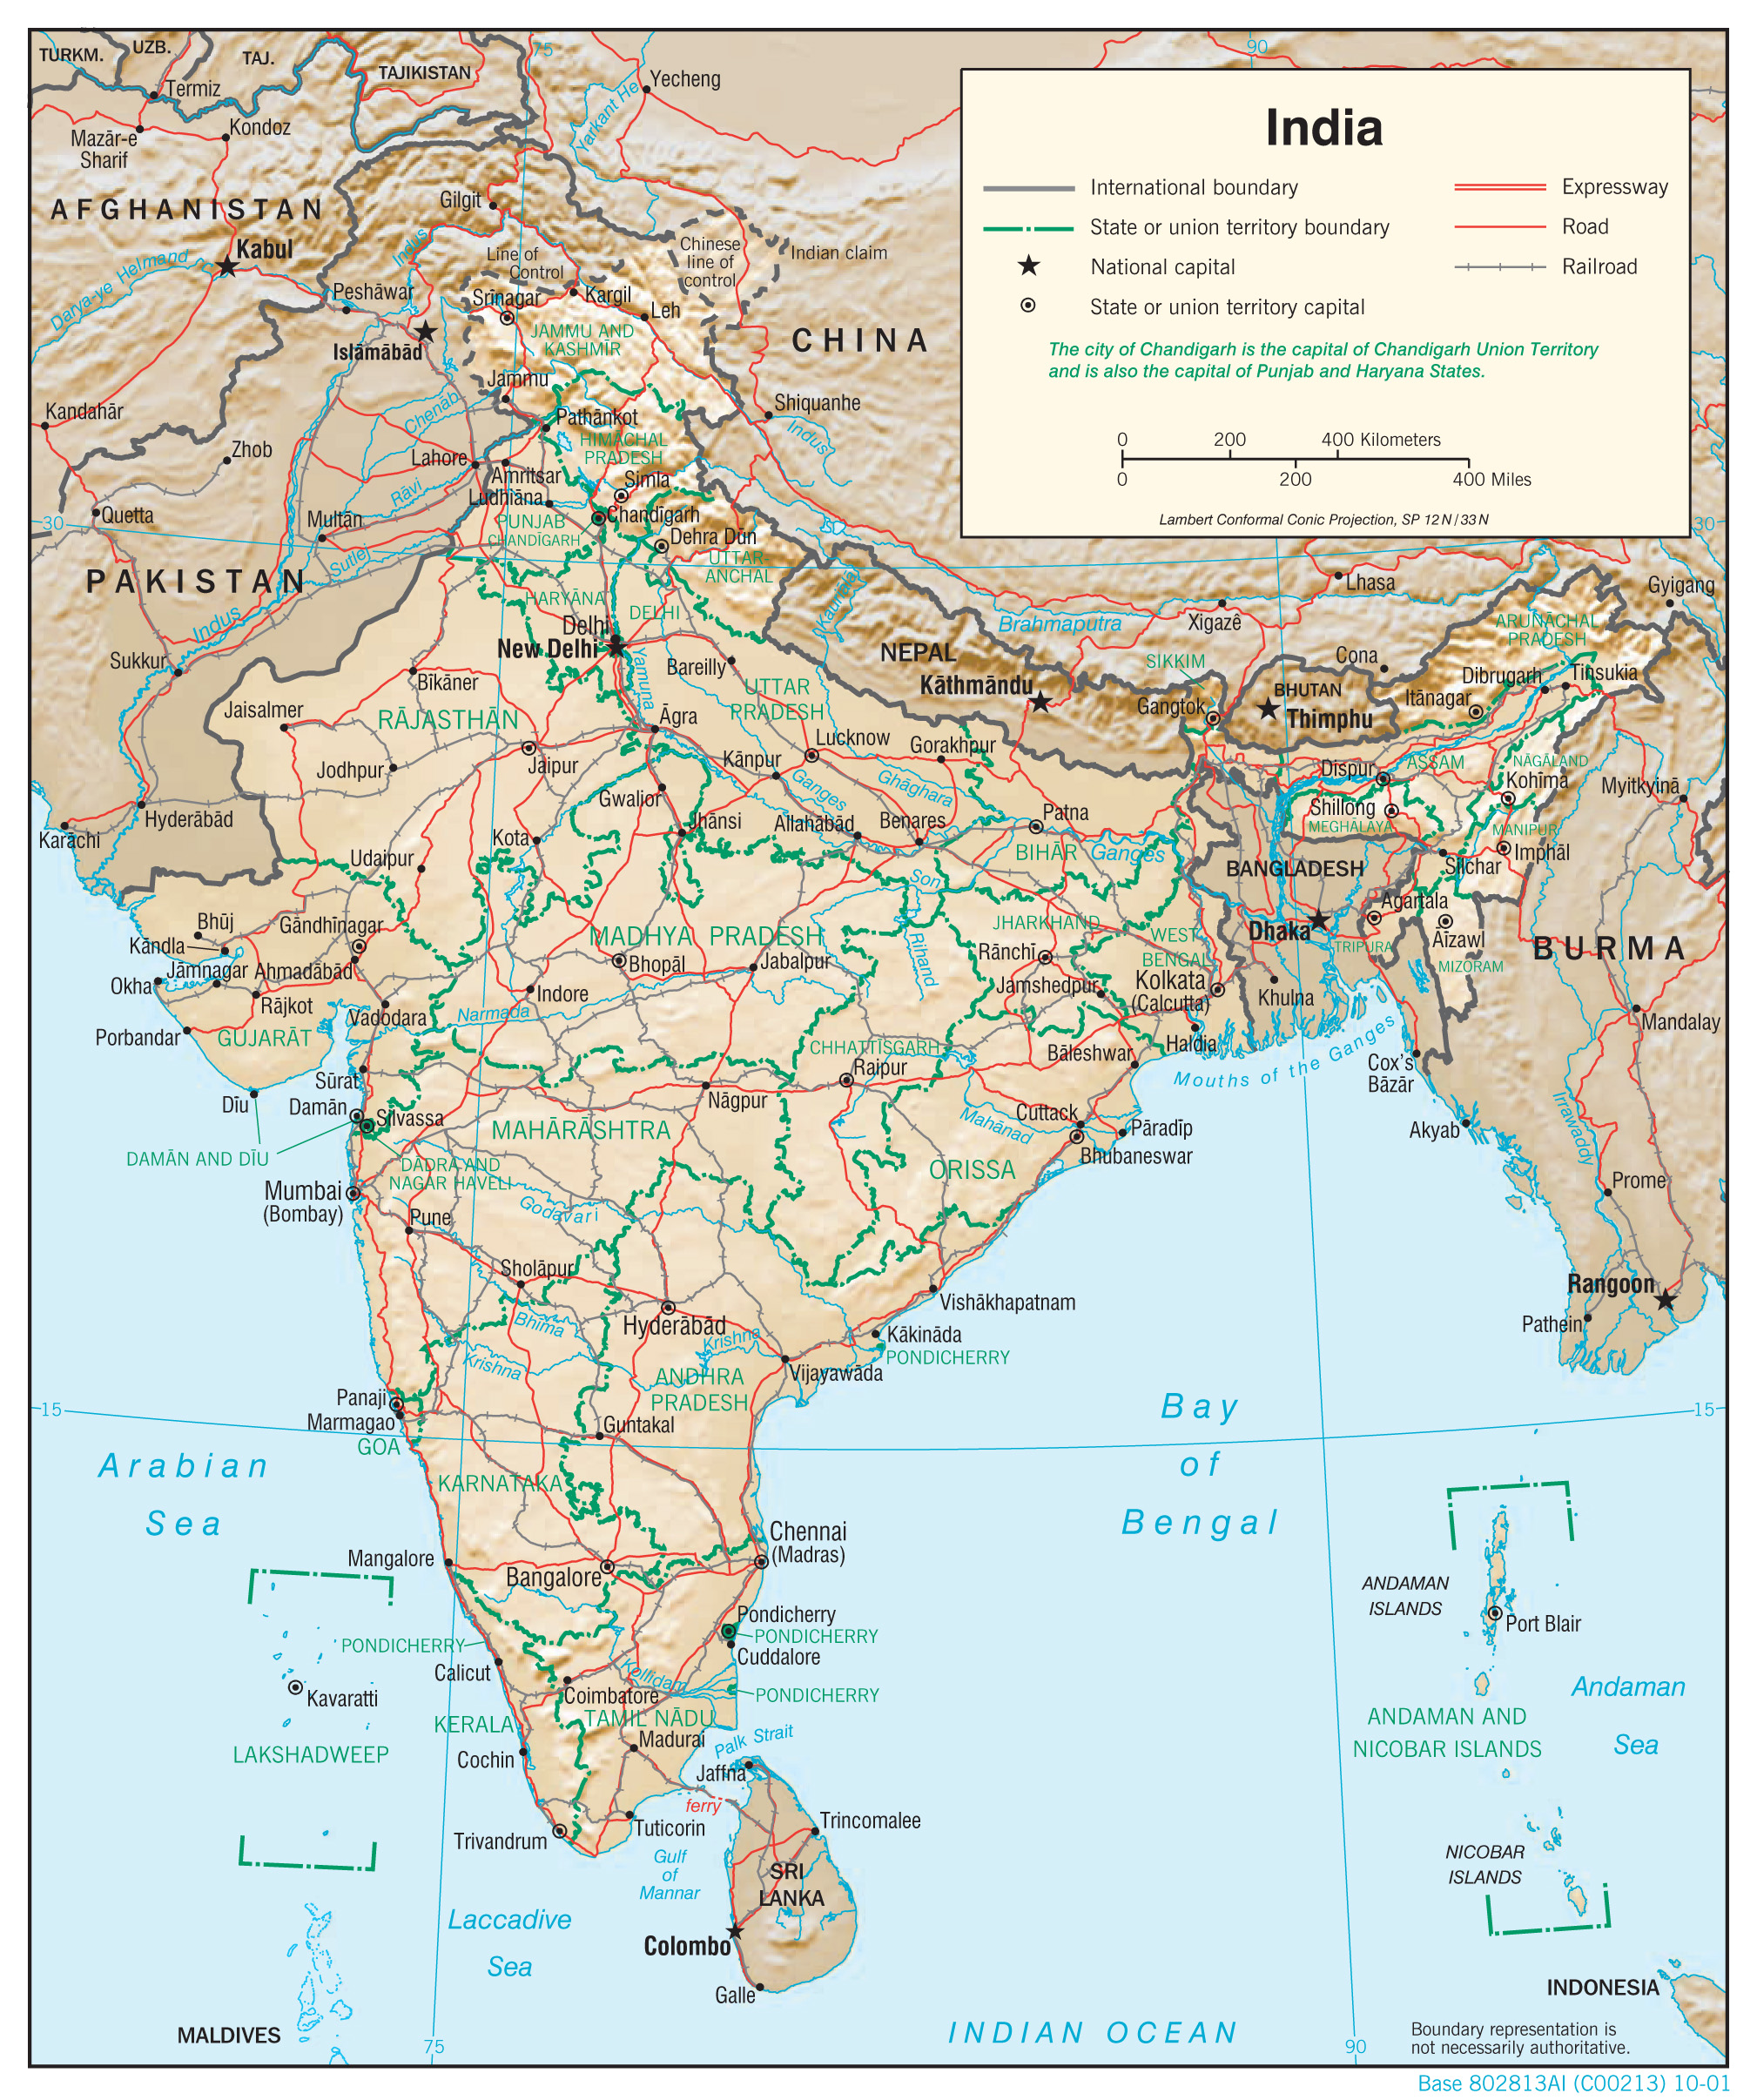 India Maps - Perry-Castañeda Map Collection - UT Liry Online on china map, africa map, greece map, indian subcontinent map, california map, germany map, sri lanka map, croatia map, karnataka map, andhra pradesh map, france map, arabian sea map, poland map, malaysia map, canada map, norway map, ireland map, iceland map, cyprus map, texas map, cuba map, korea map, thailand map, czech republic map, russia map, argentina map, egypt map, italy map, europe map, maharashtra map, portugal map, new zealand map, japan map, time zone map, australia map, brazil map, spain map,